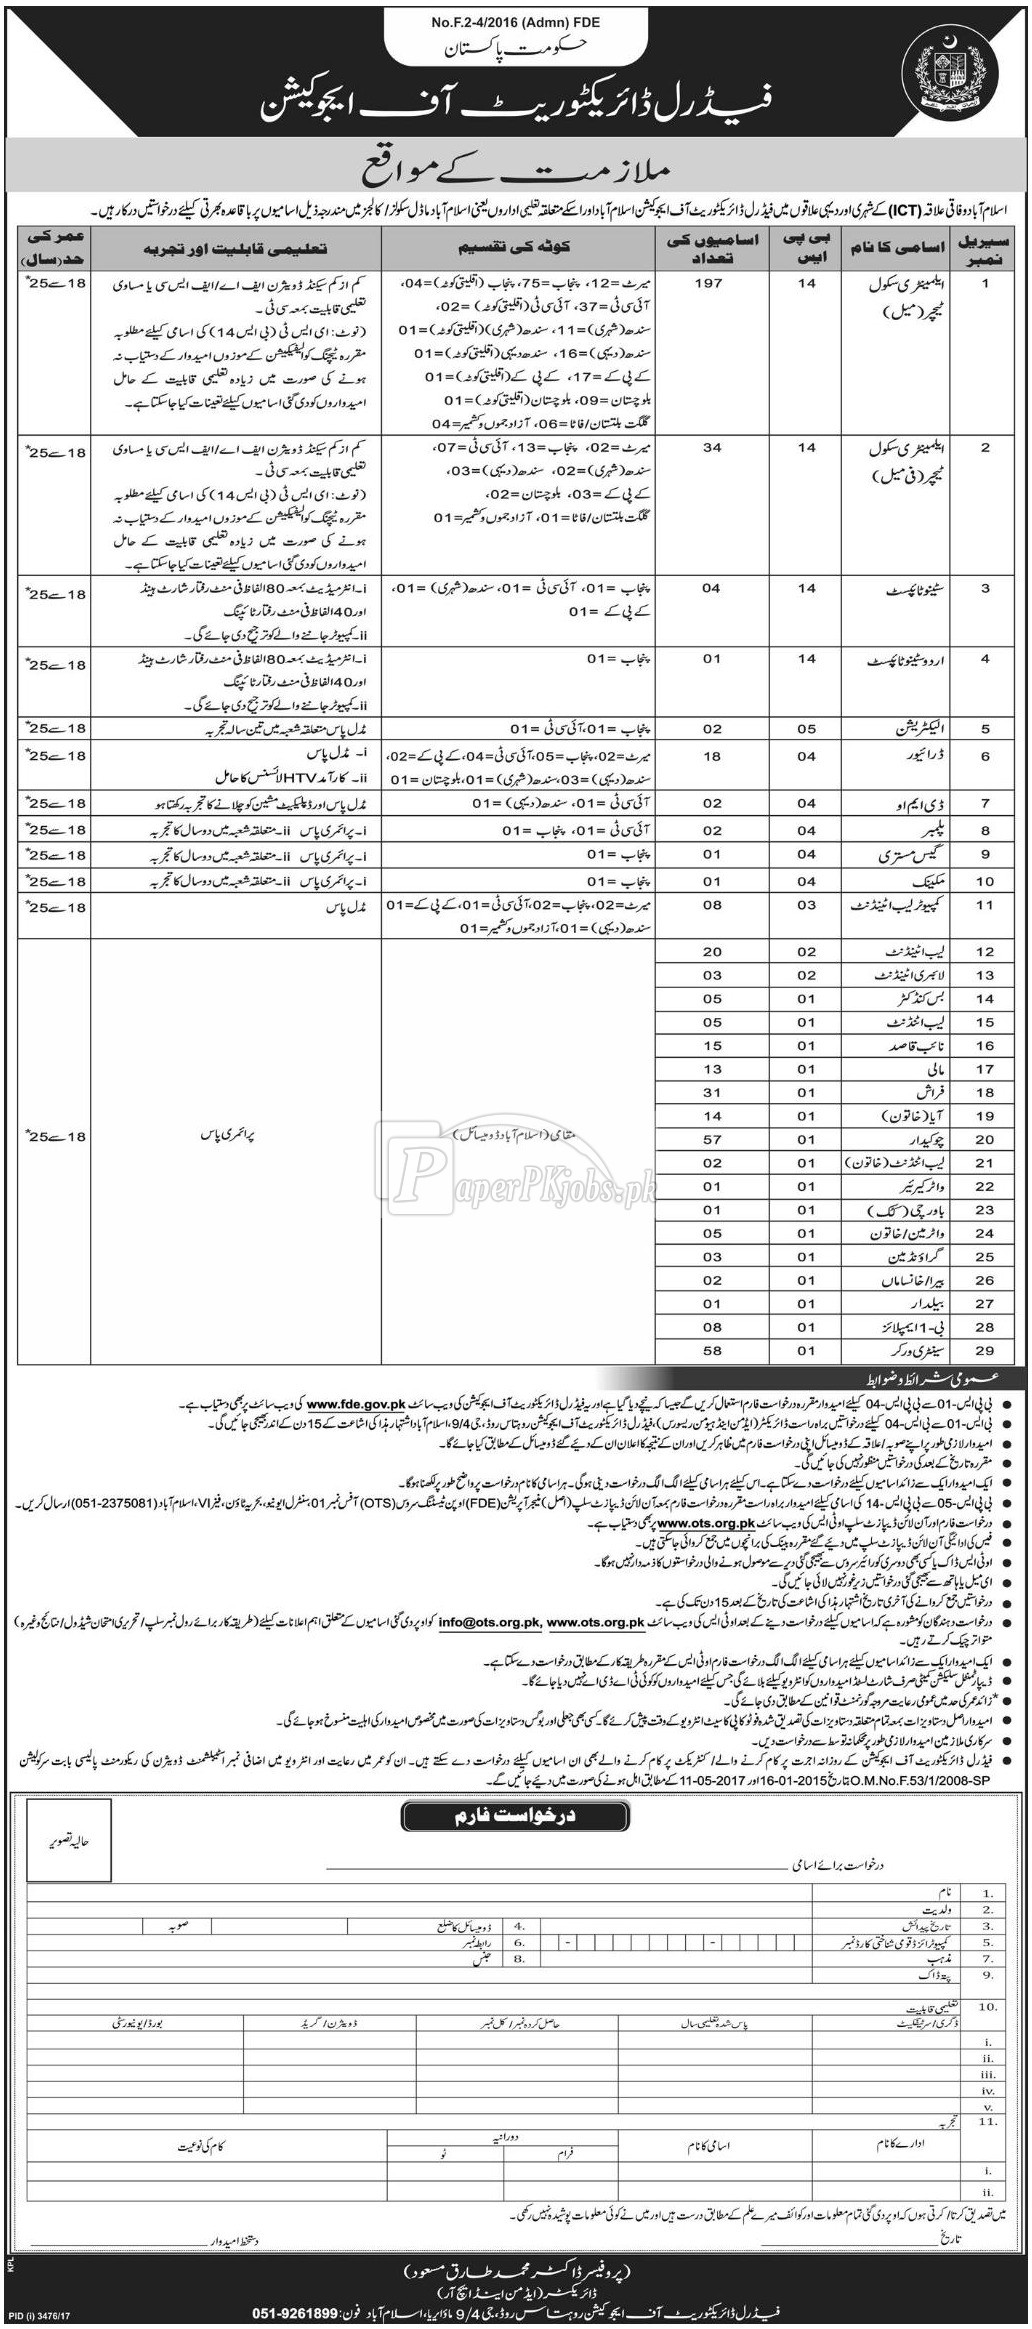 Federal Directorate of Education OTS Jobs 2017